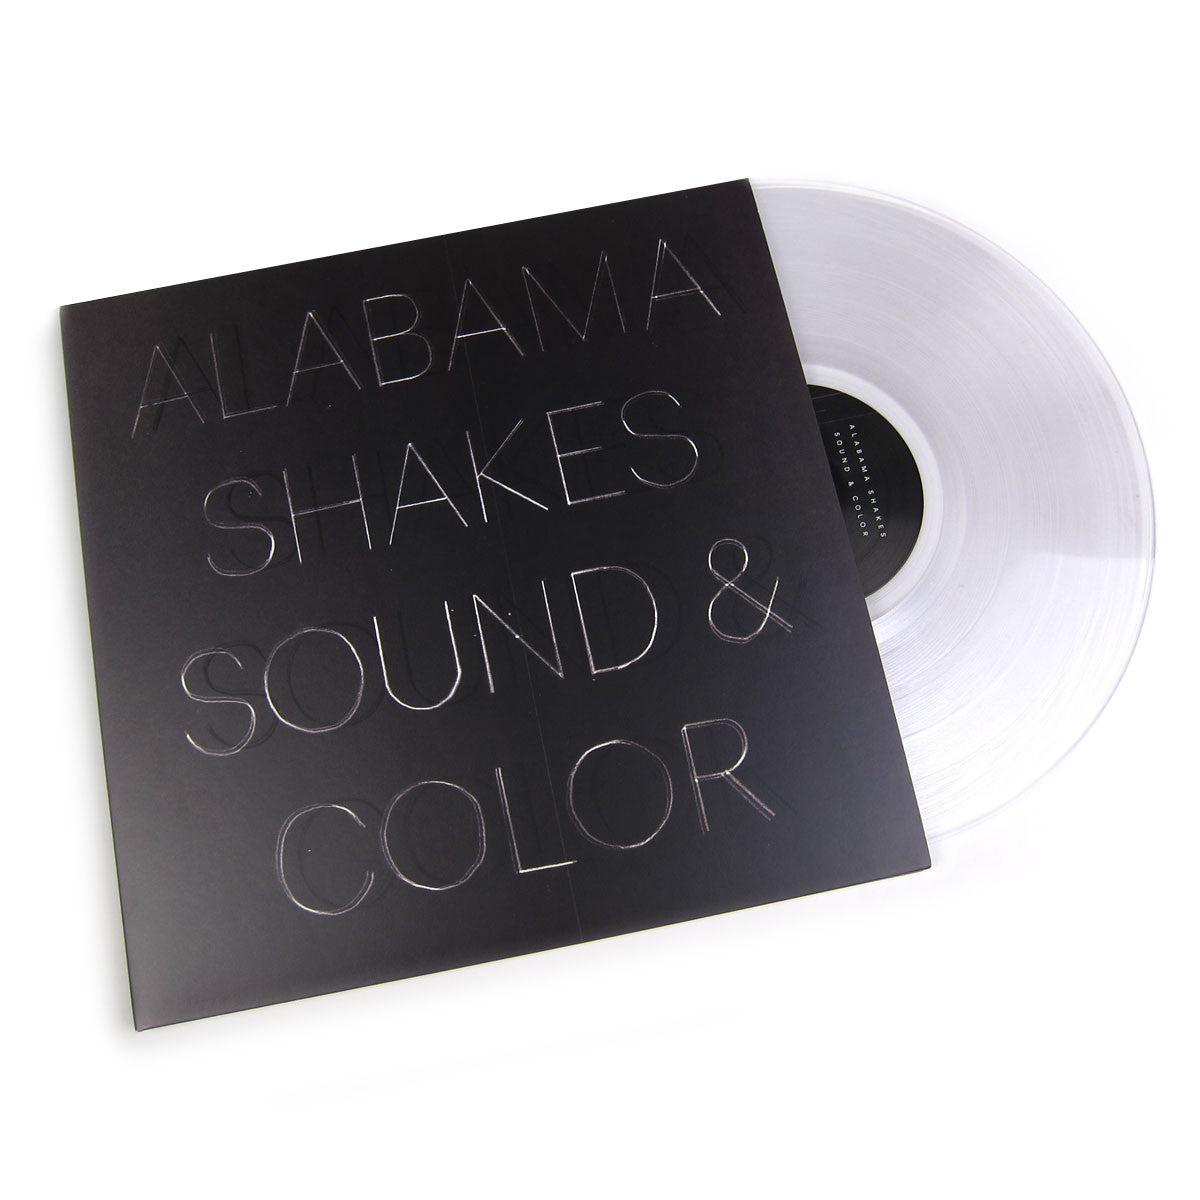 Alabama Shakes: Sound & Color (Colored Vinyl) Vinyl 2LP